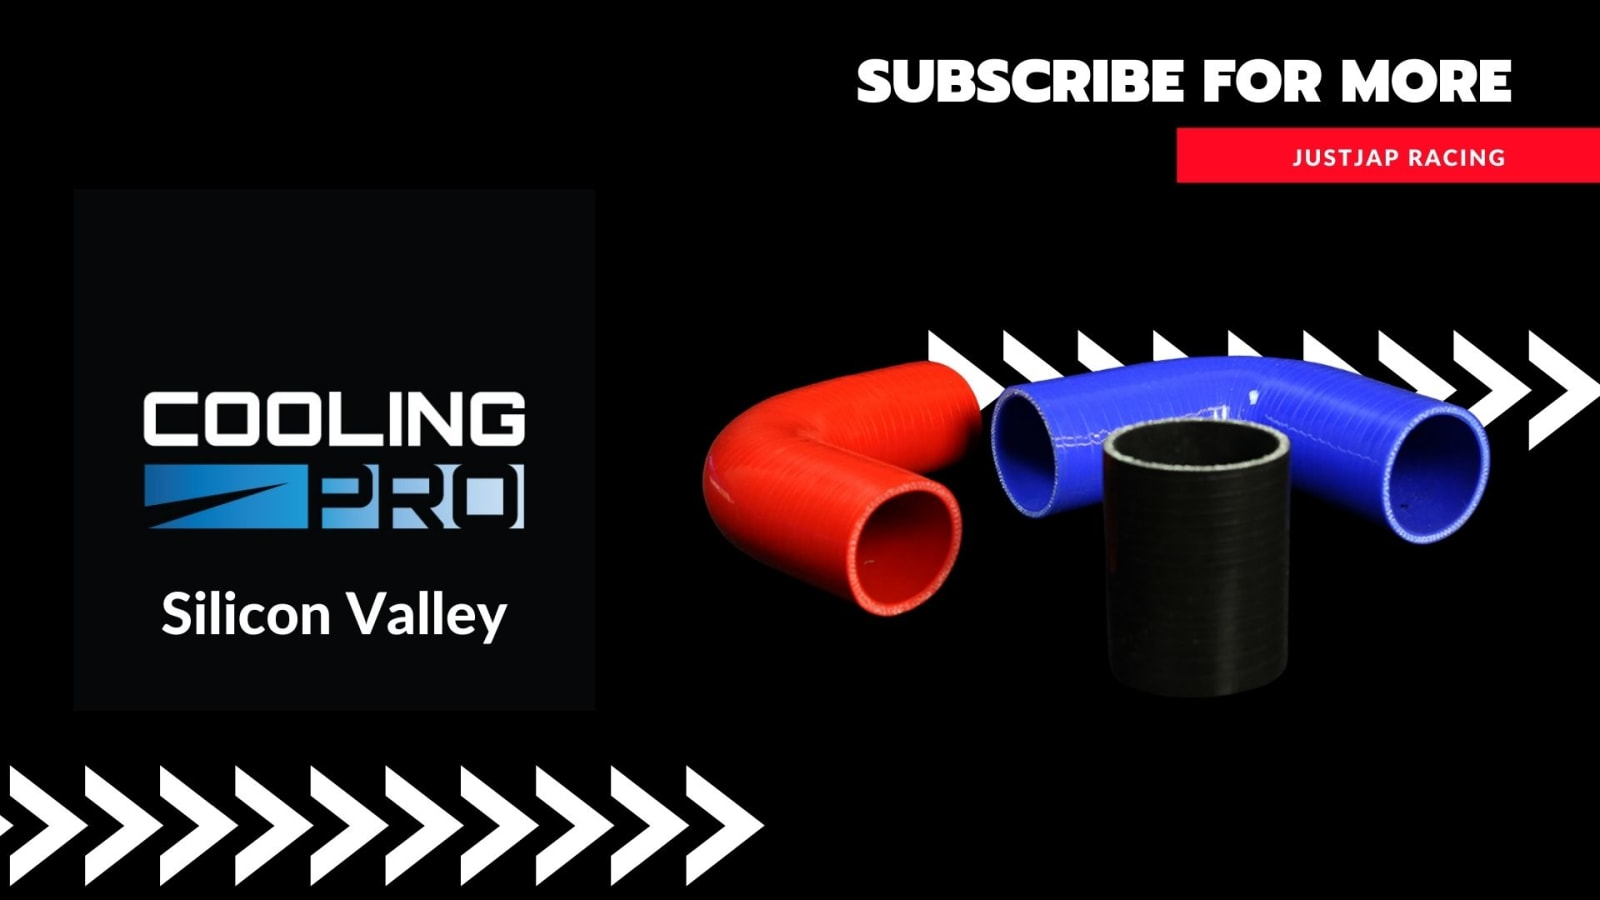 Cooling Pro Silicone 2.75 Inch / 70mm to 3 Inch / 75mm Stepped 90 Degree Bend Elbow Hose